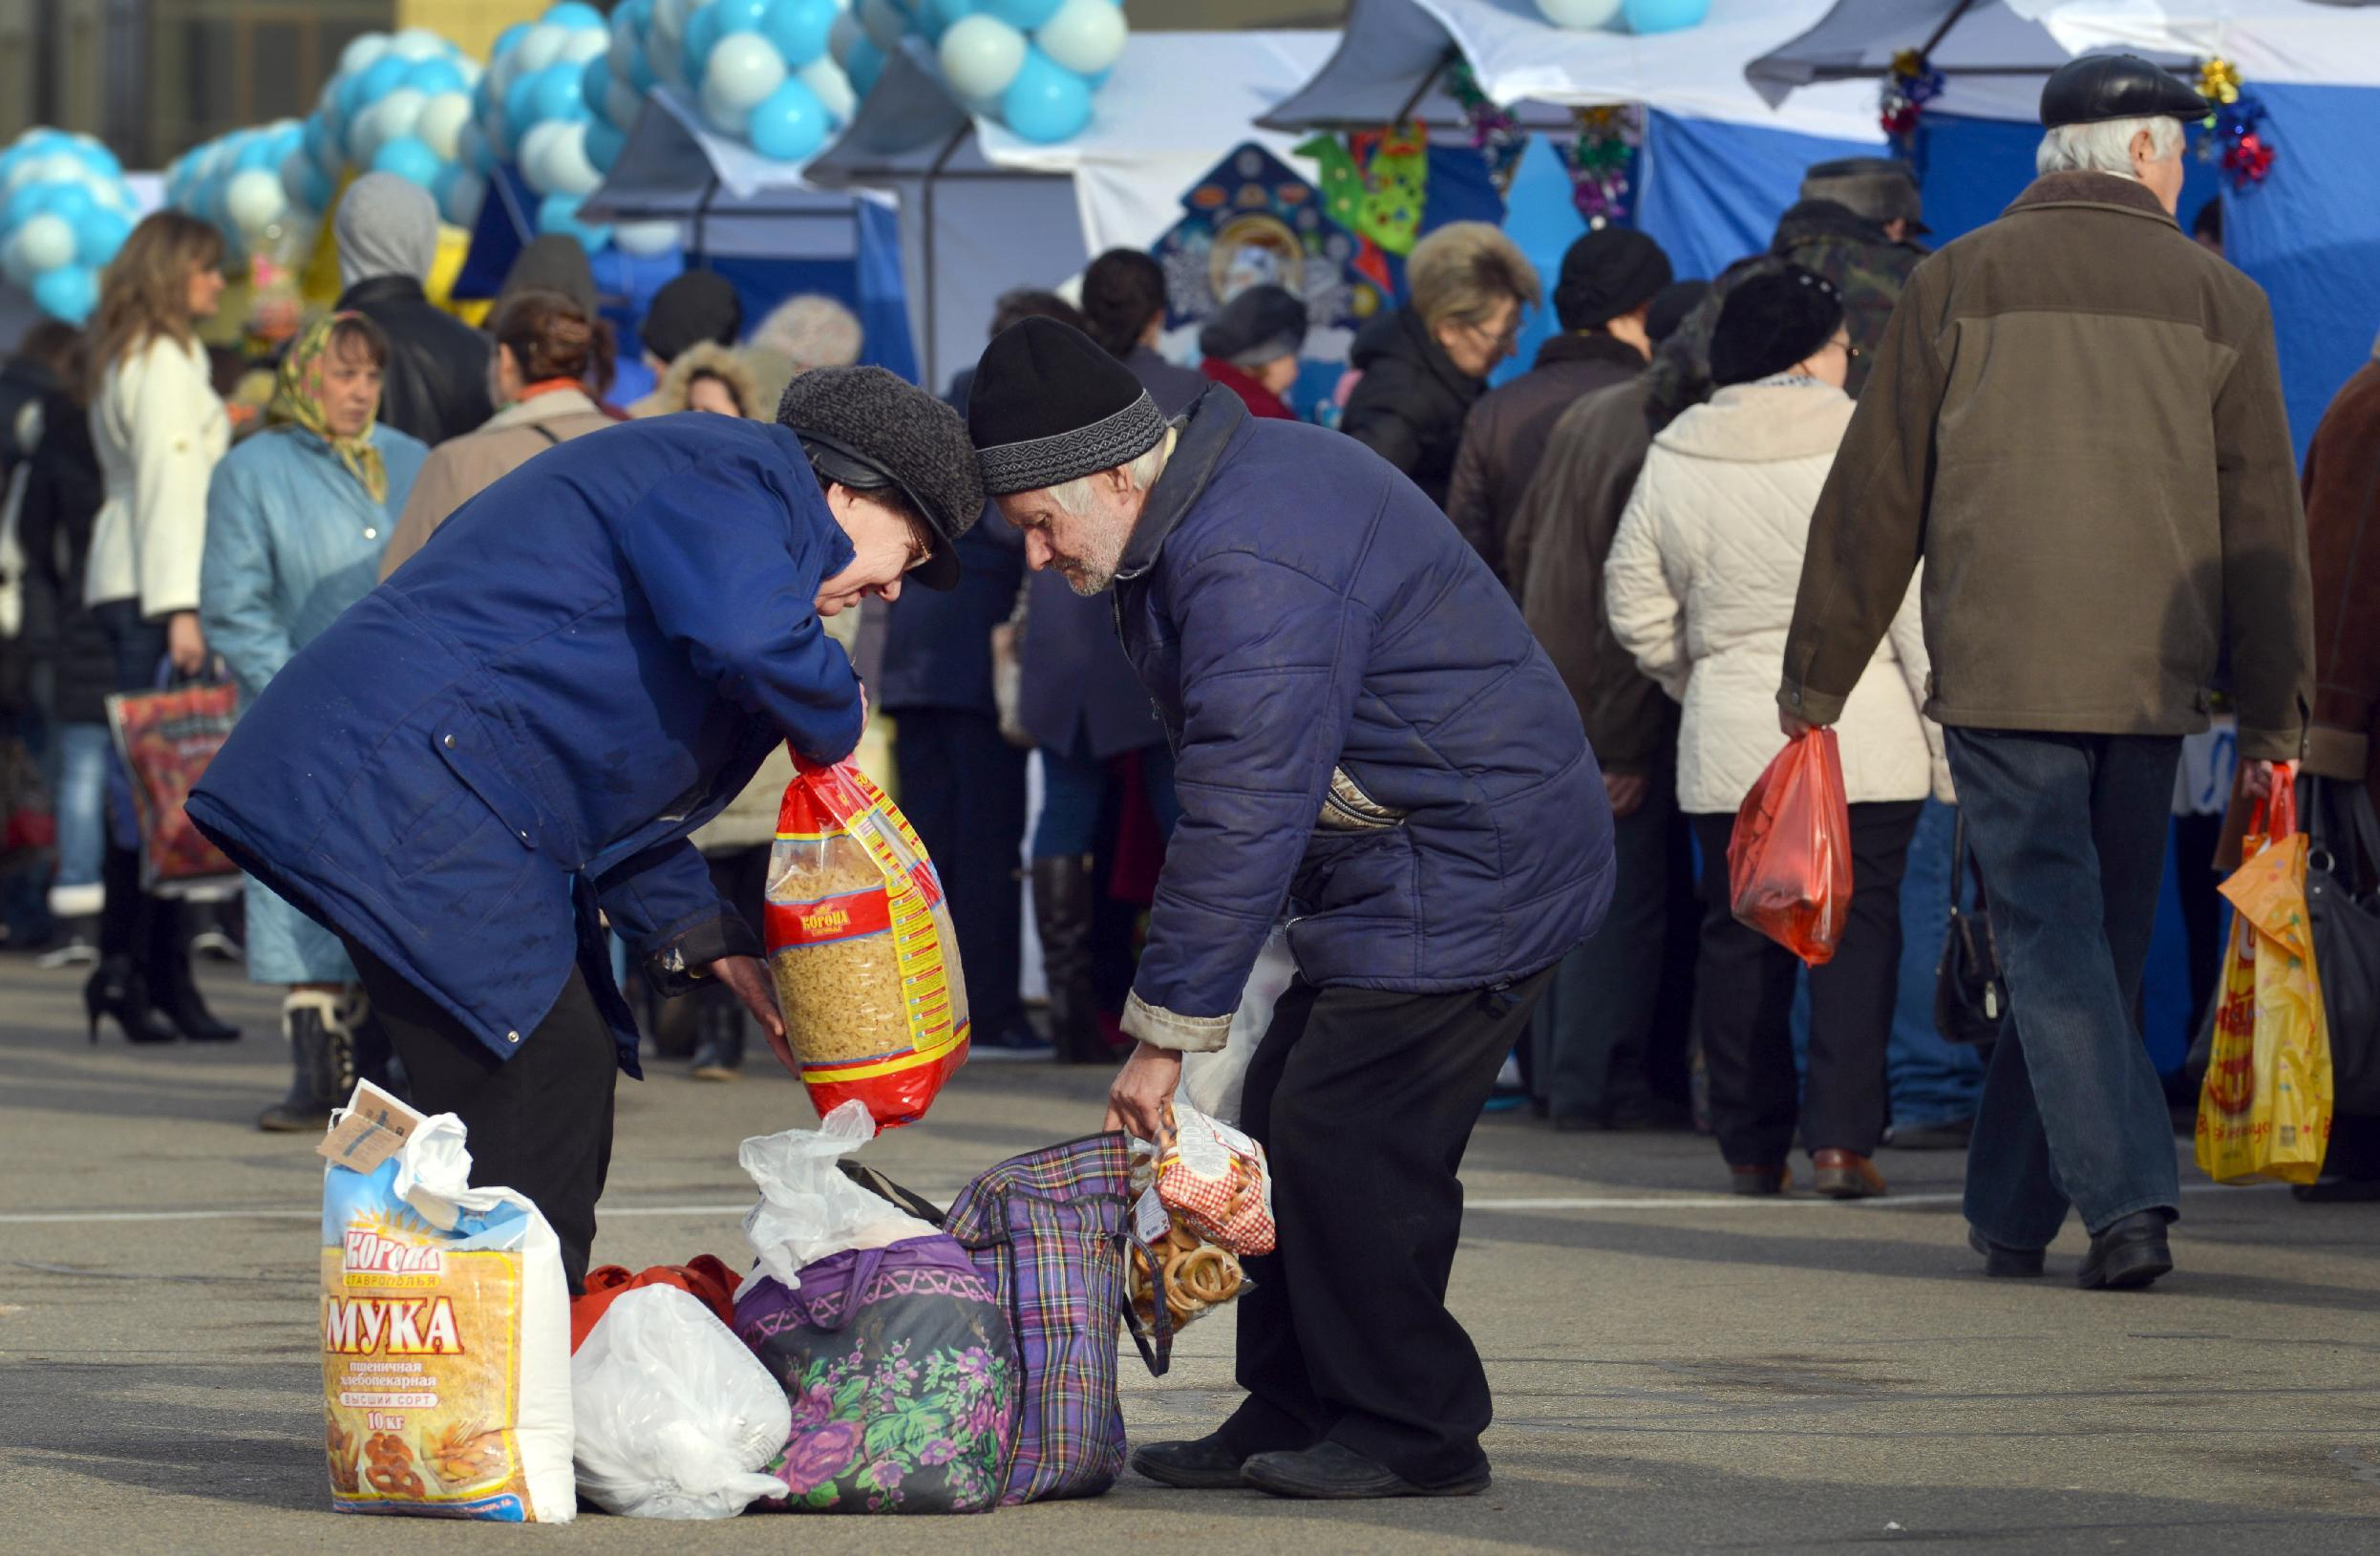 Not by bread alone: Russians urged to go without for Putin